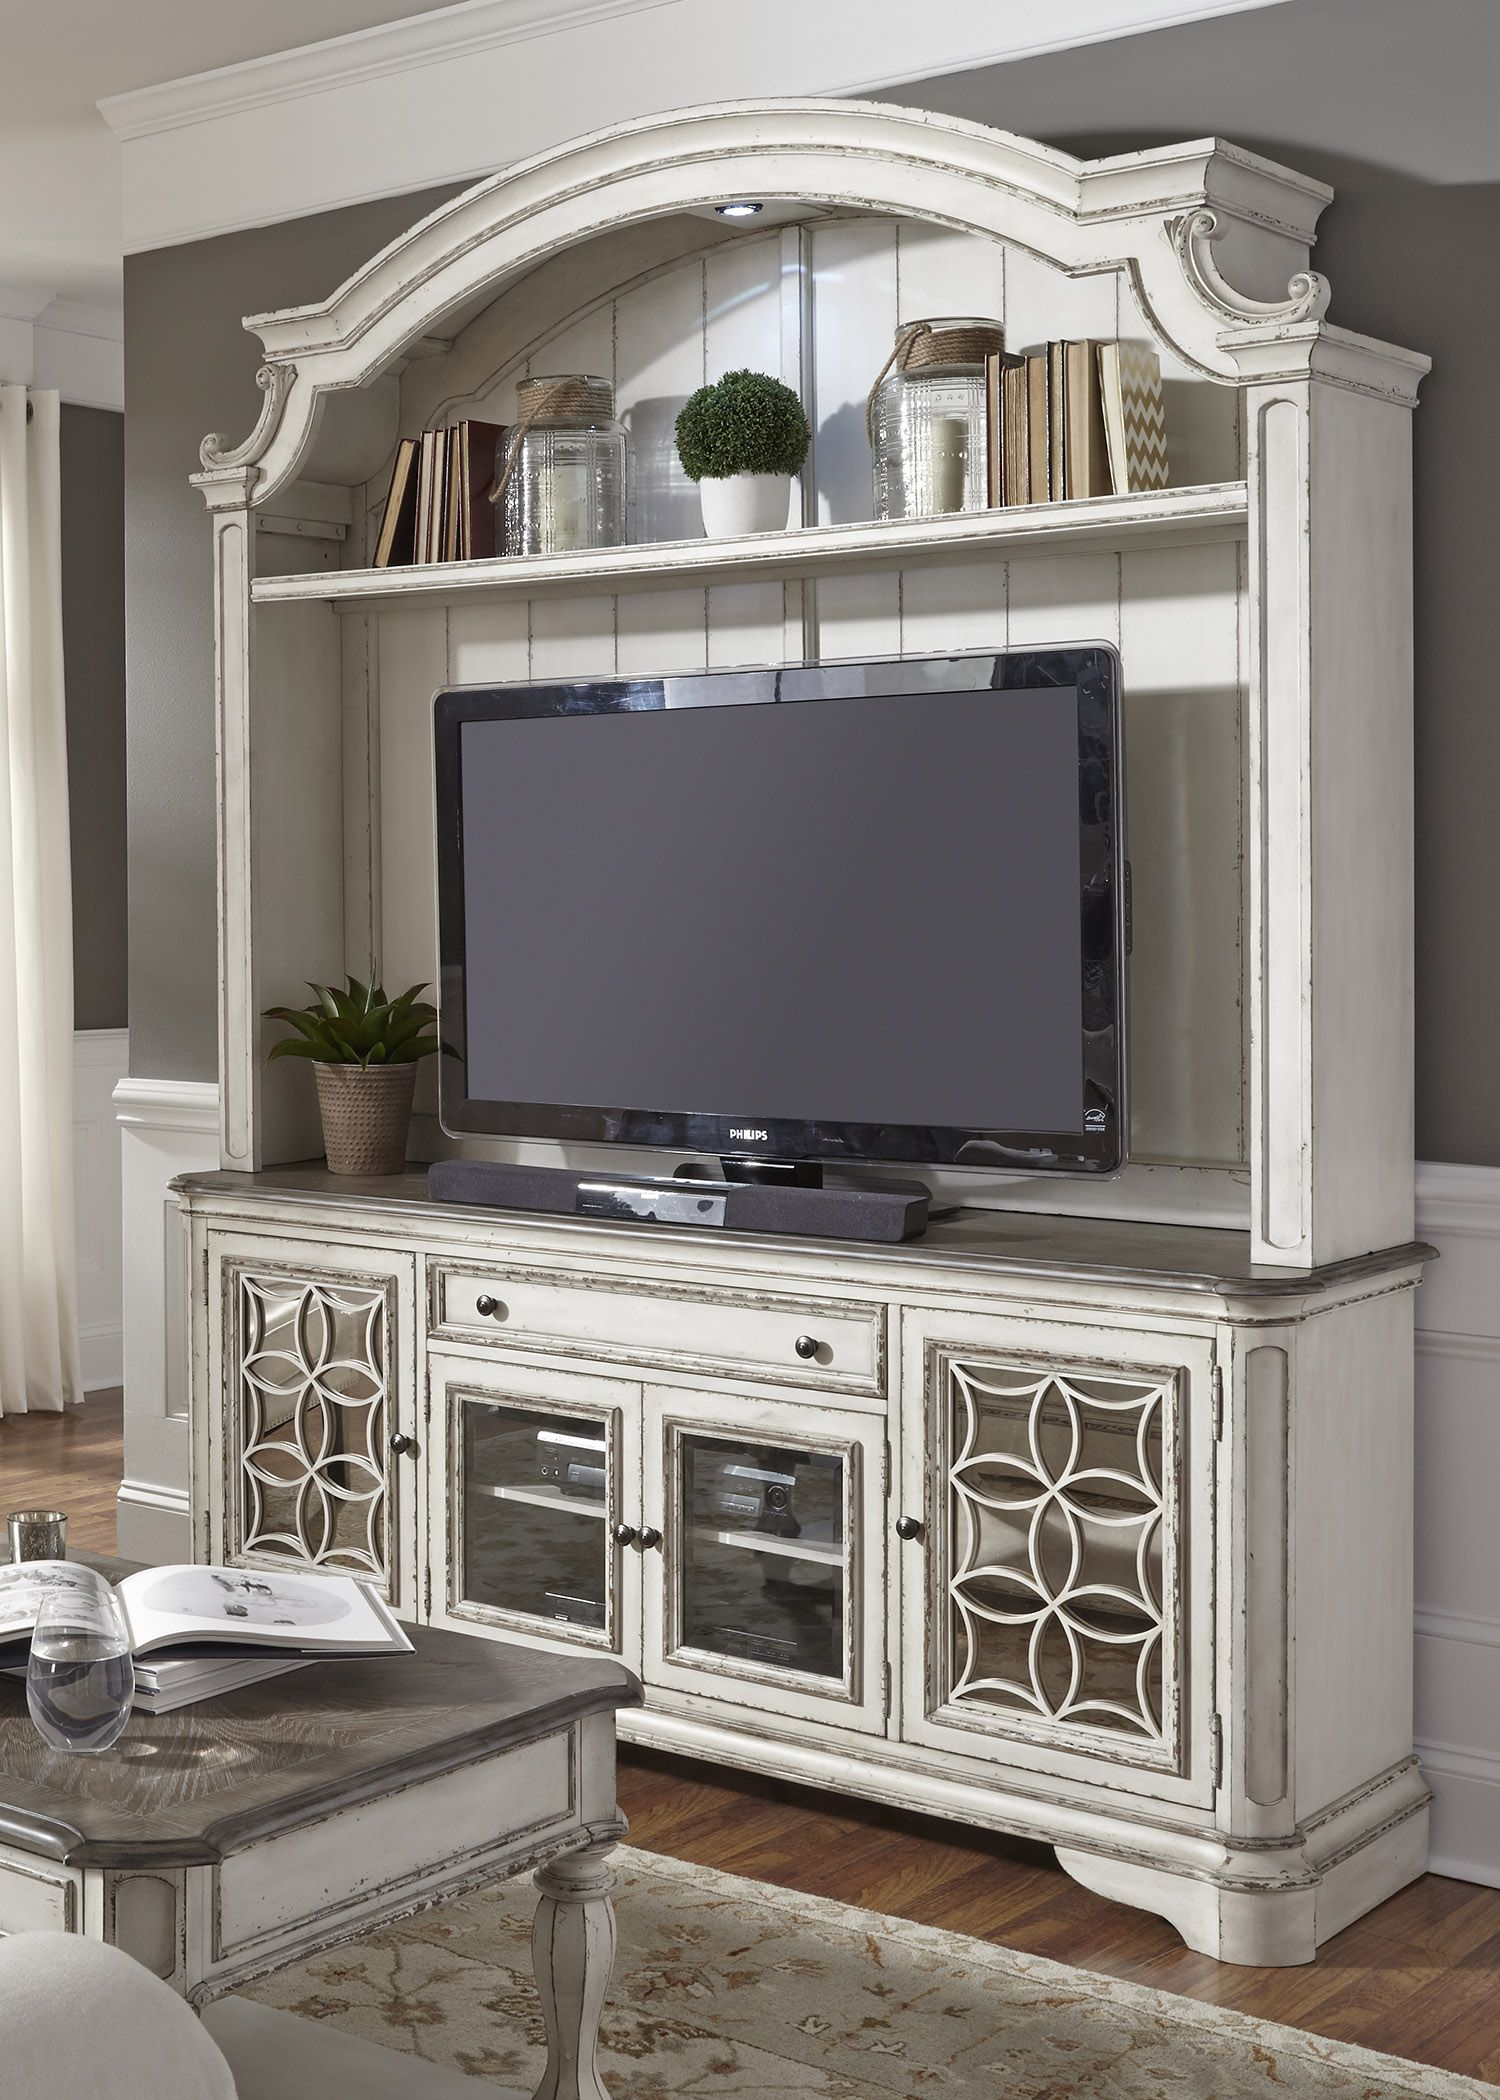 244-ENT-ENC-1 | NHIL-Overstock | Pinterest | Tv walls, Walls and House